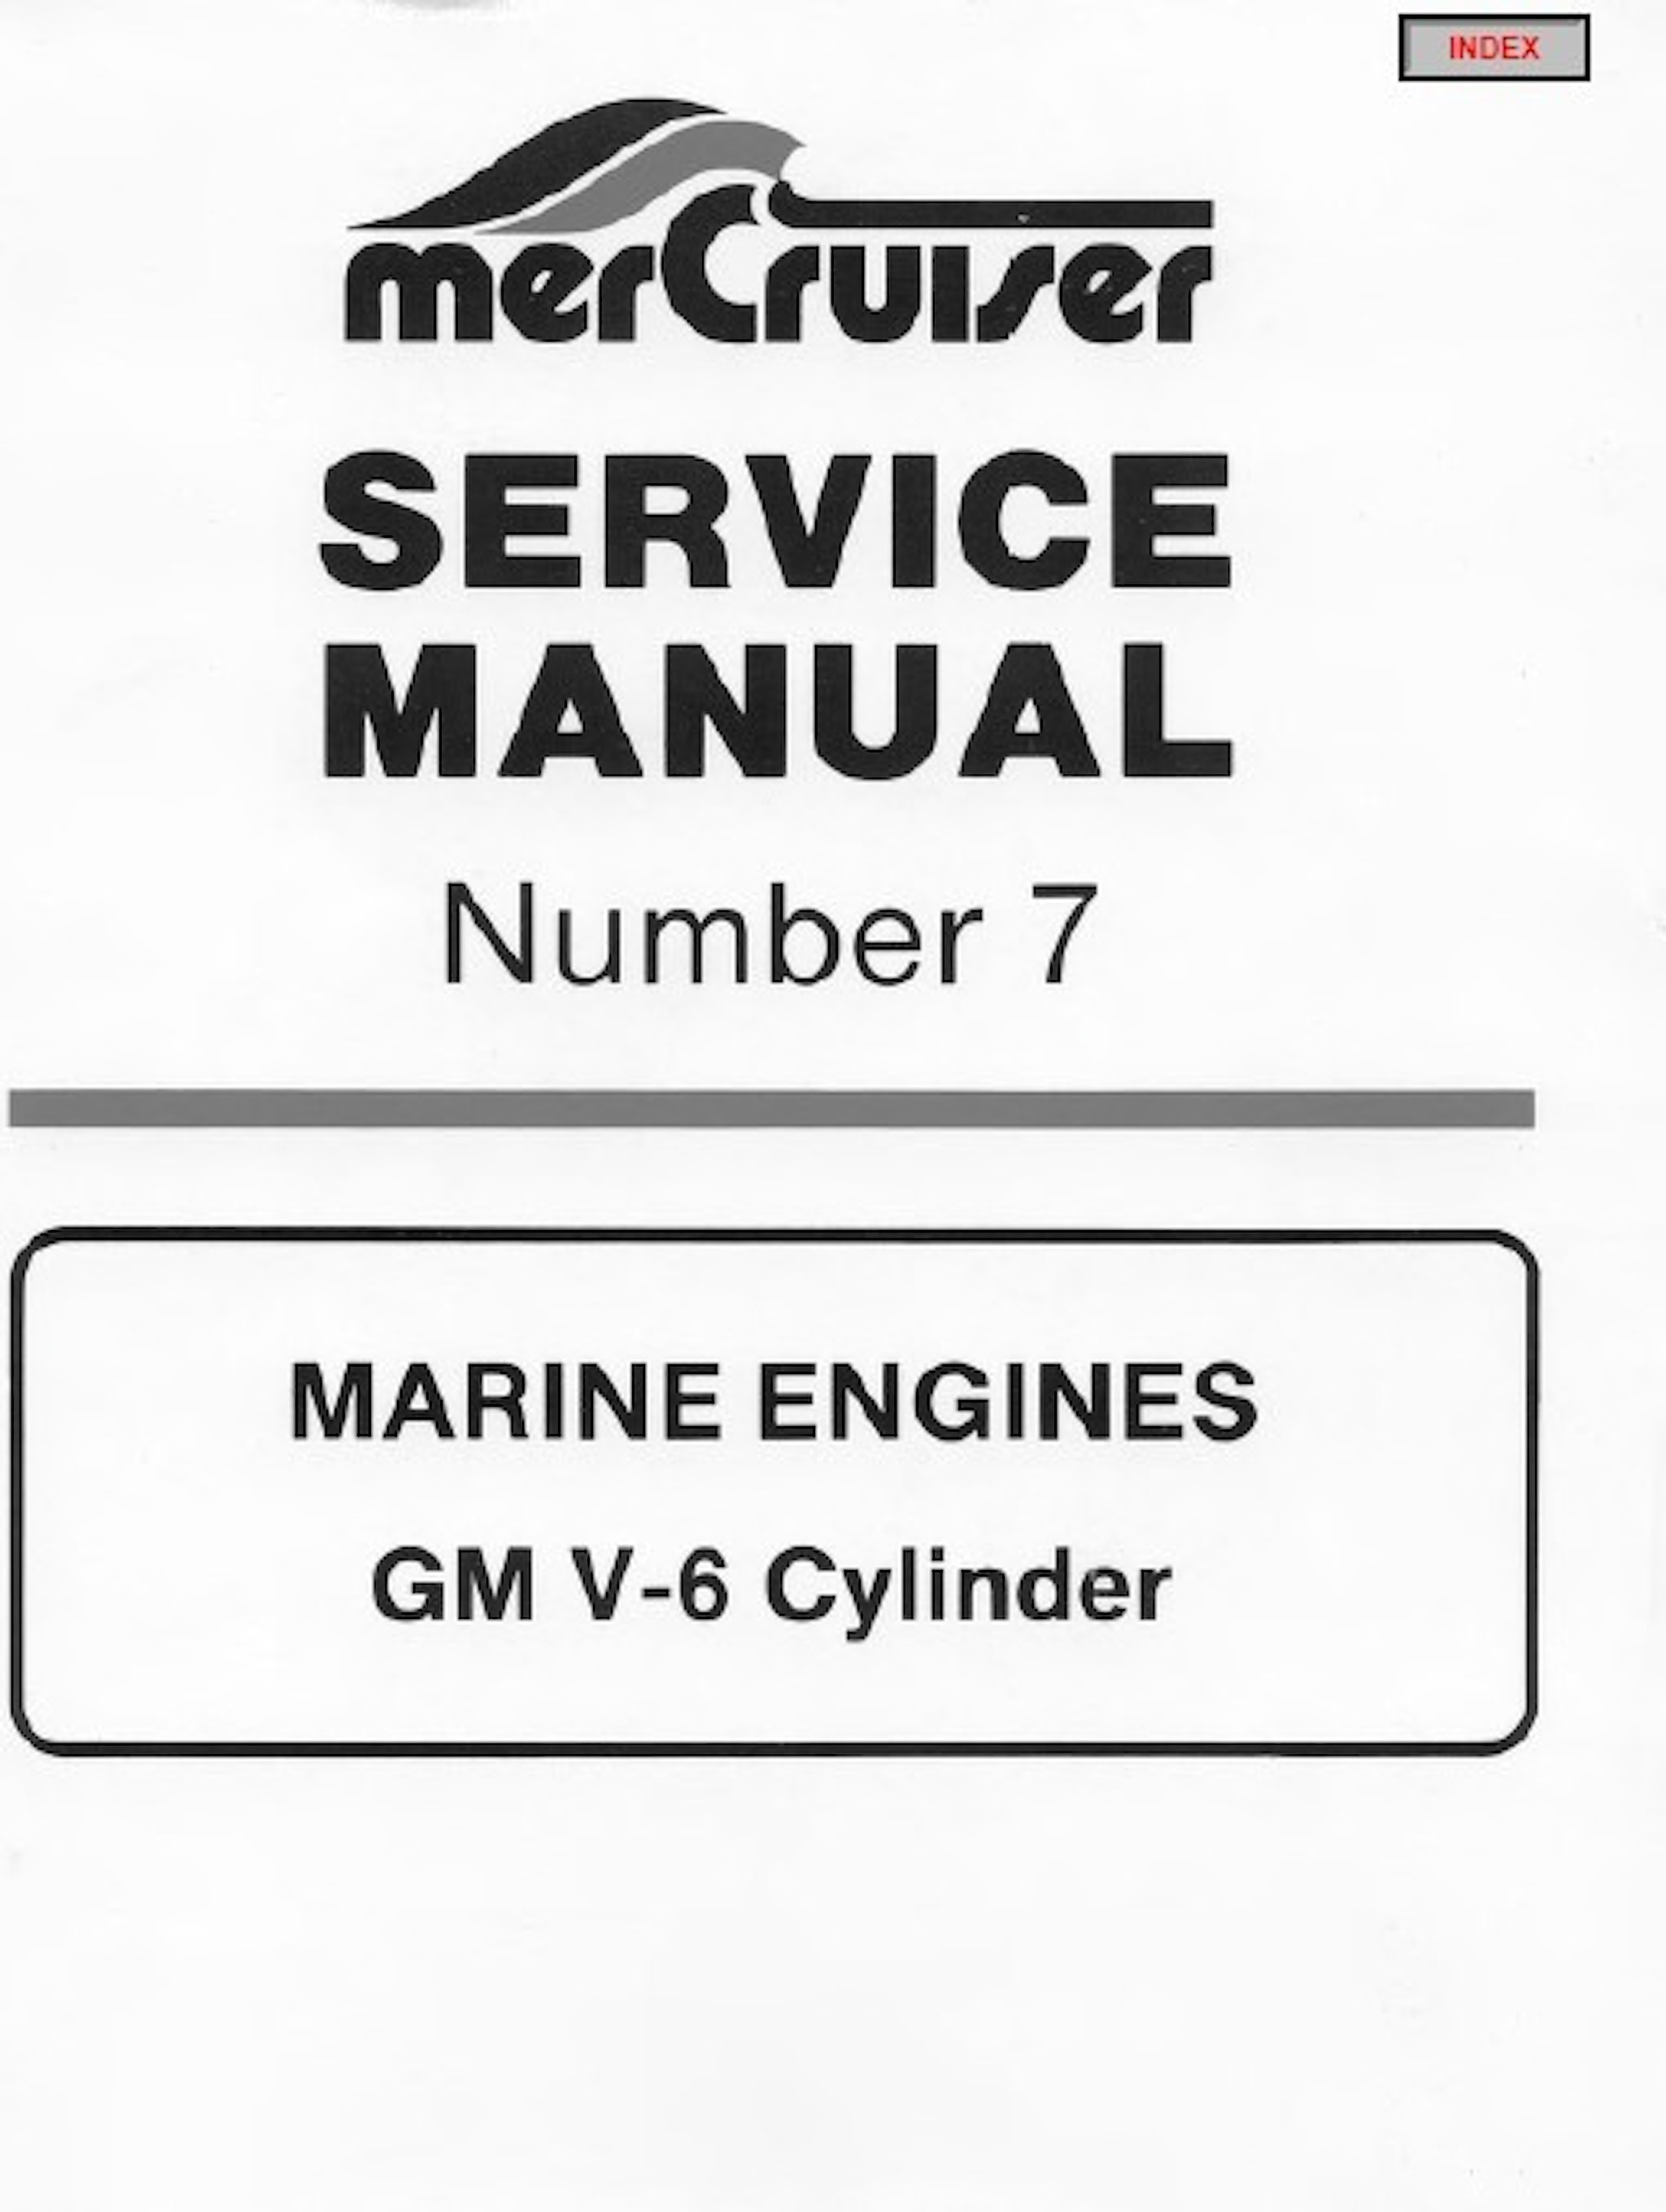 FREE DOWNLOAD! Mercruiser Service Manual #7 Marine Engines 6 ... on